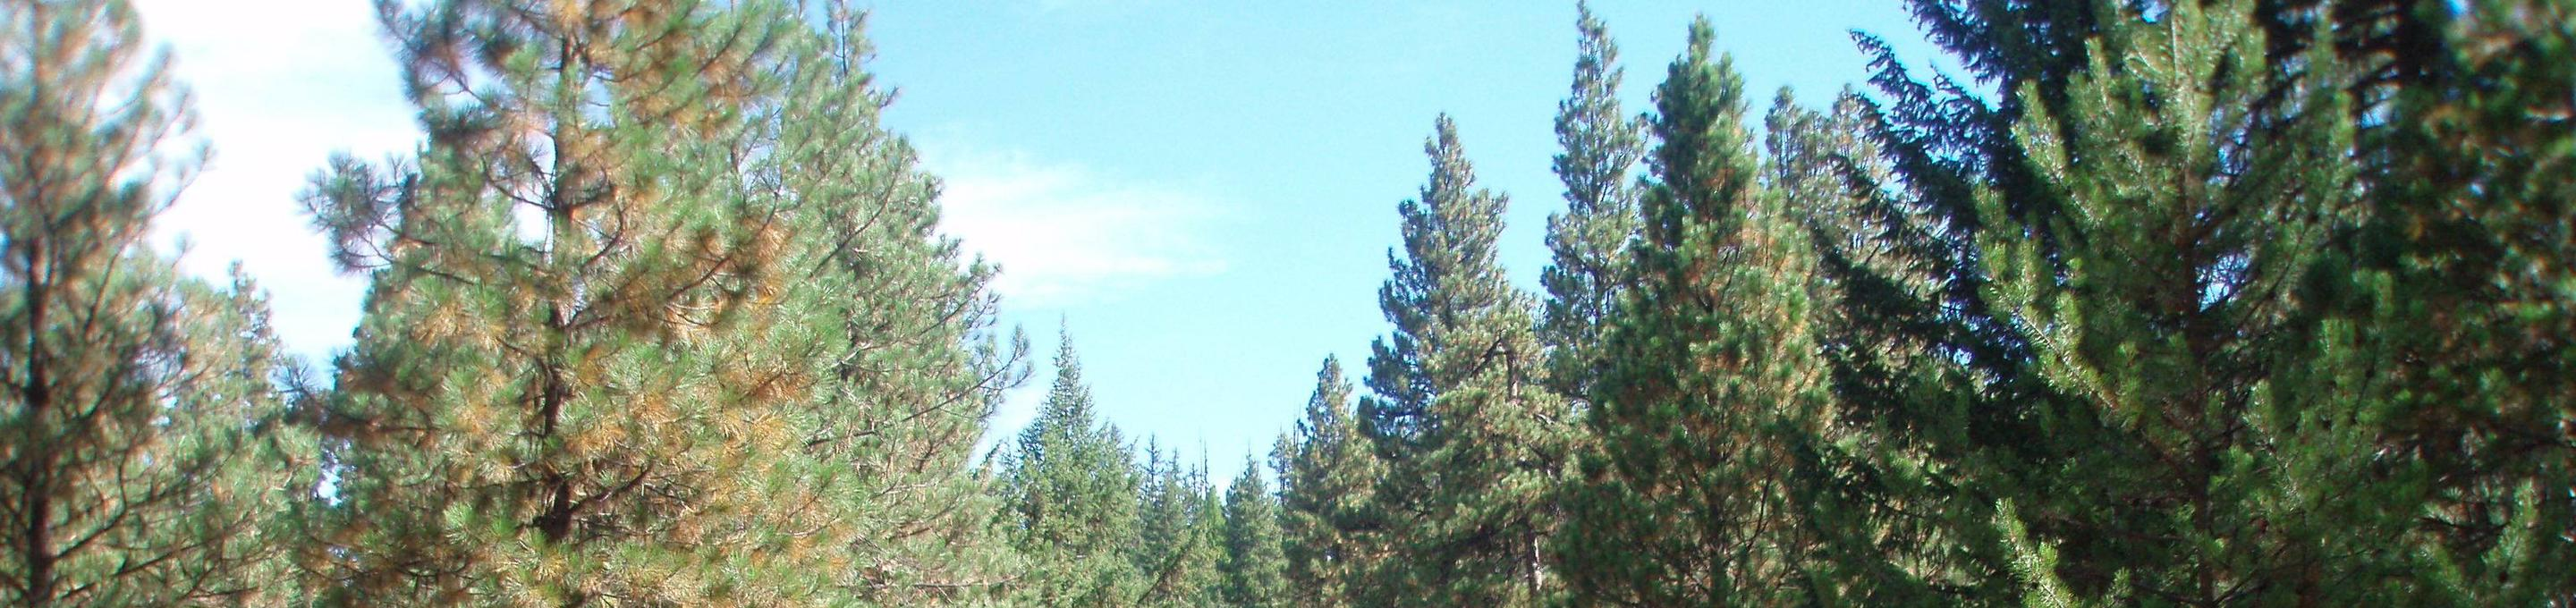 Pine and fir trees under blue, partly cloudy sky.Kaner Flat Campground